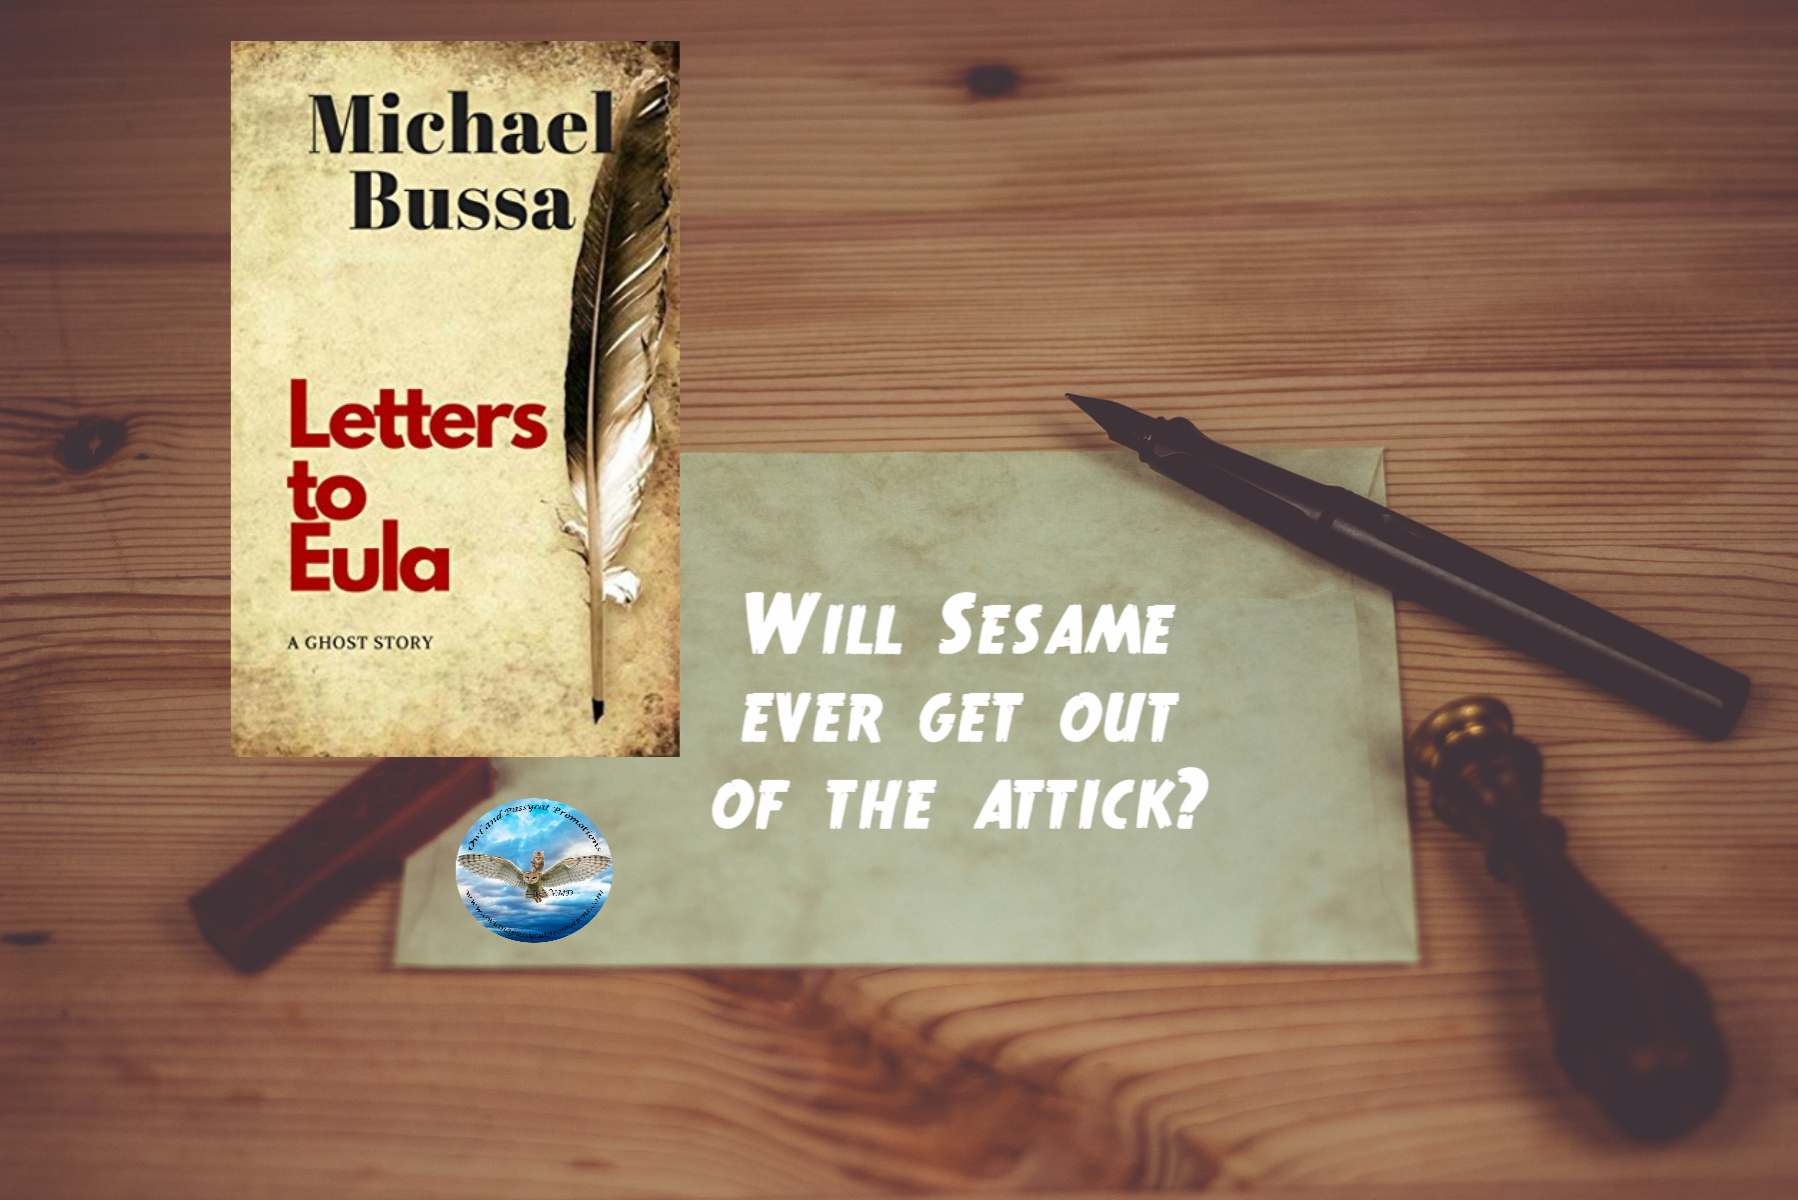 Michael letters to eula 2-18-18